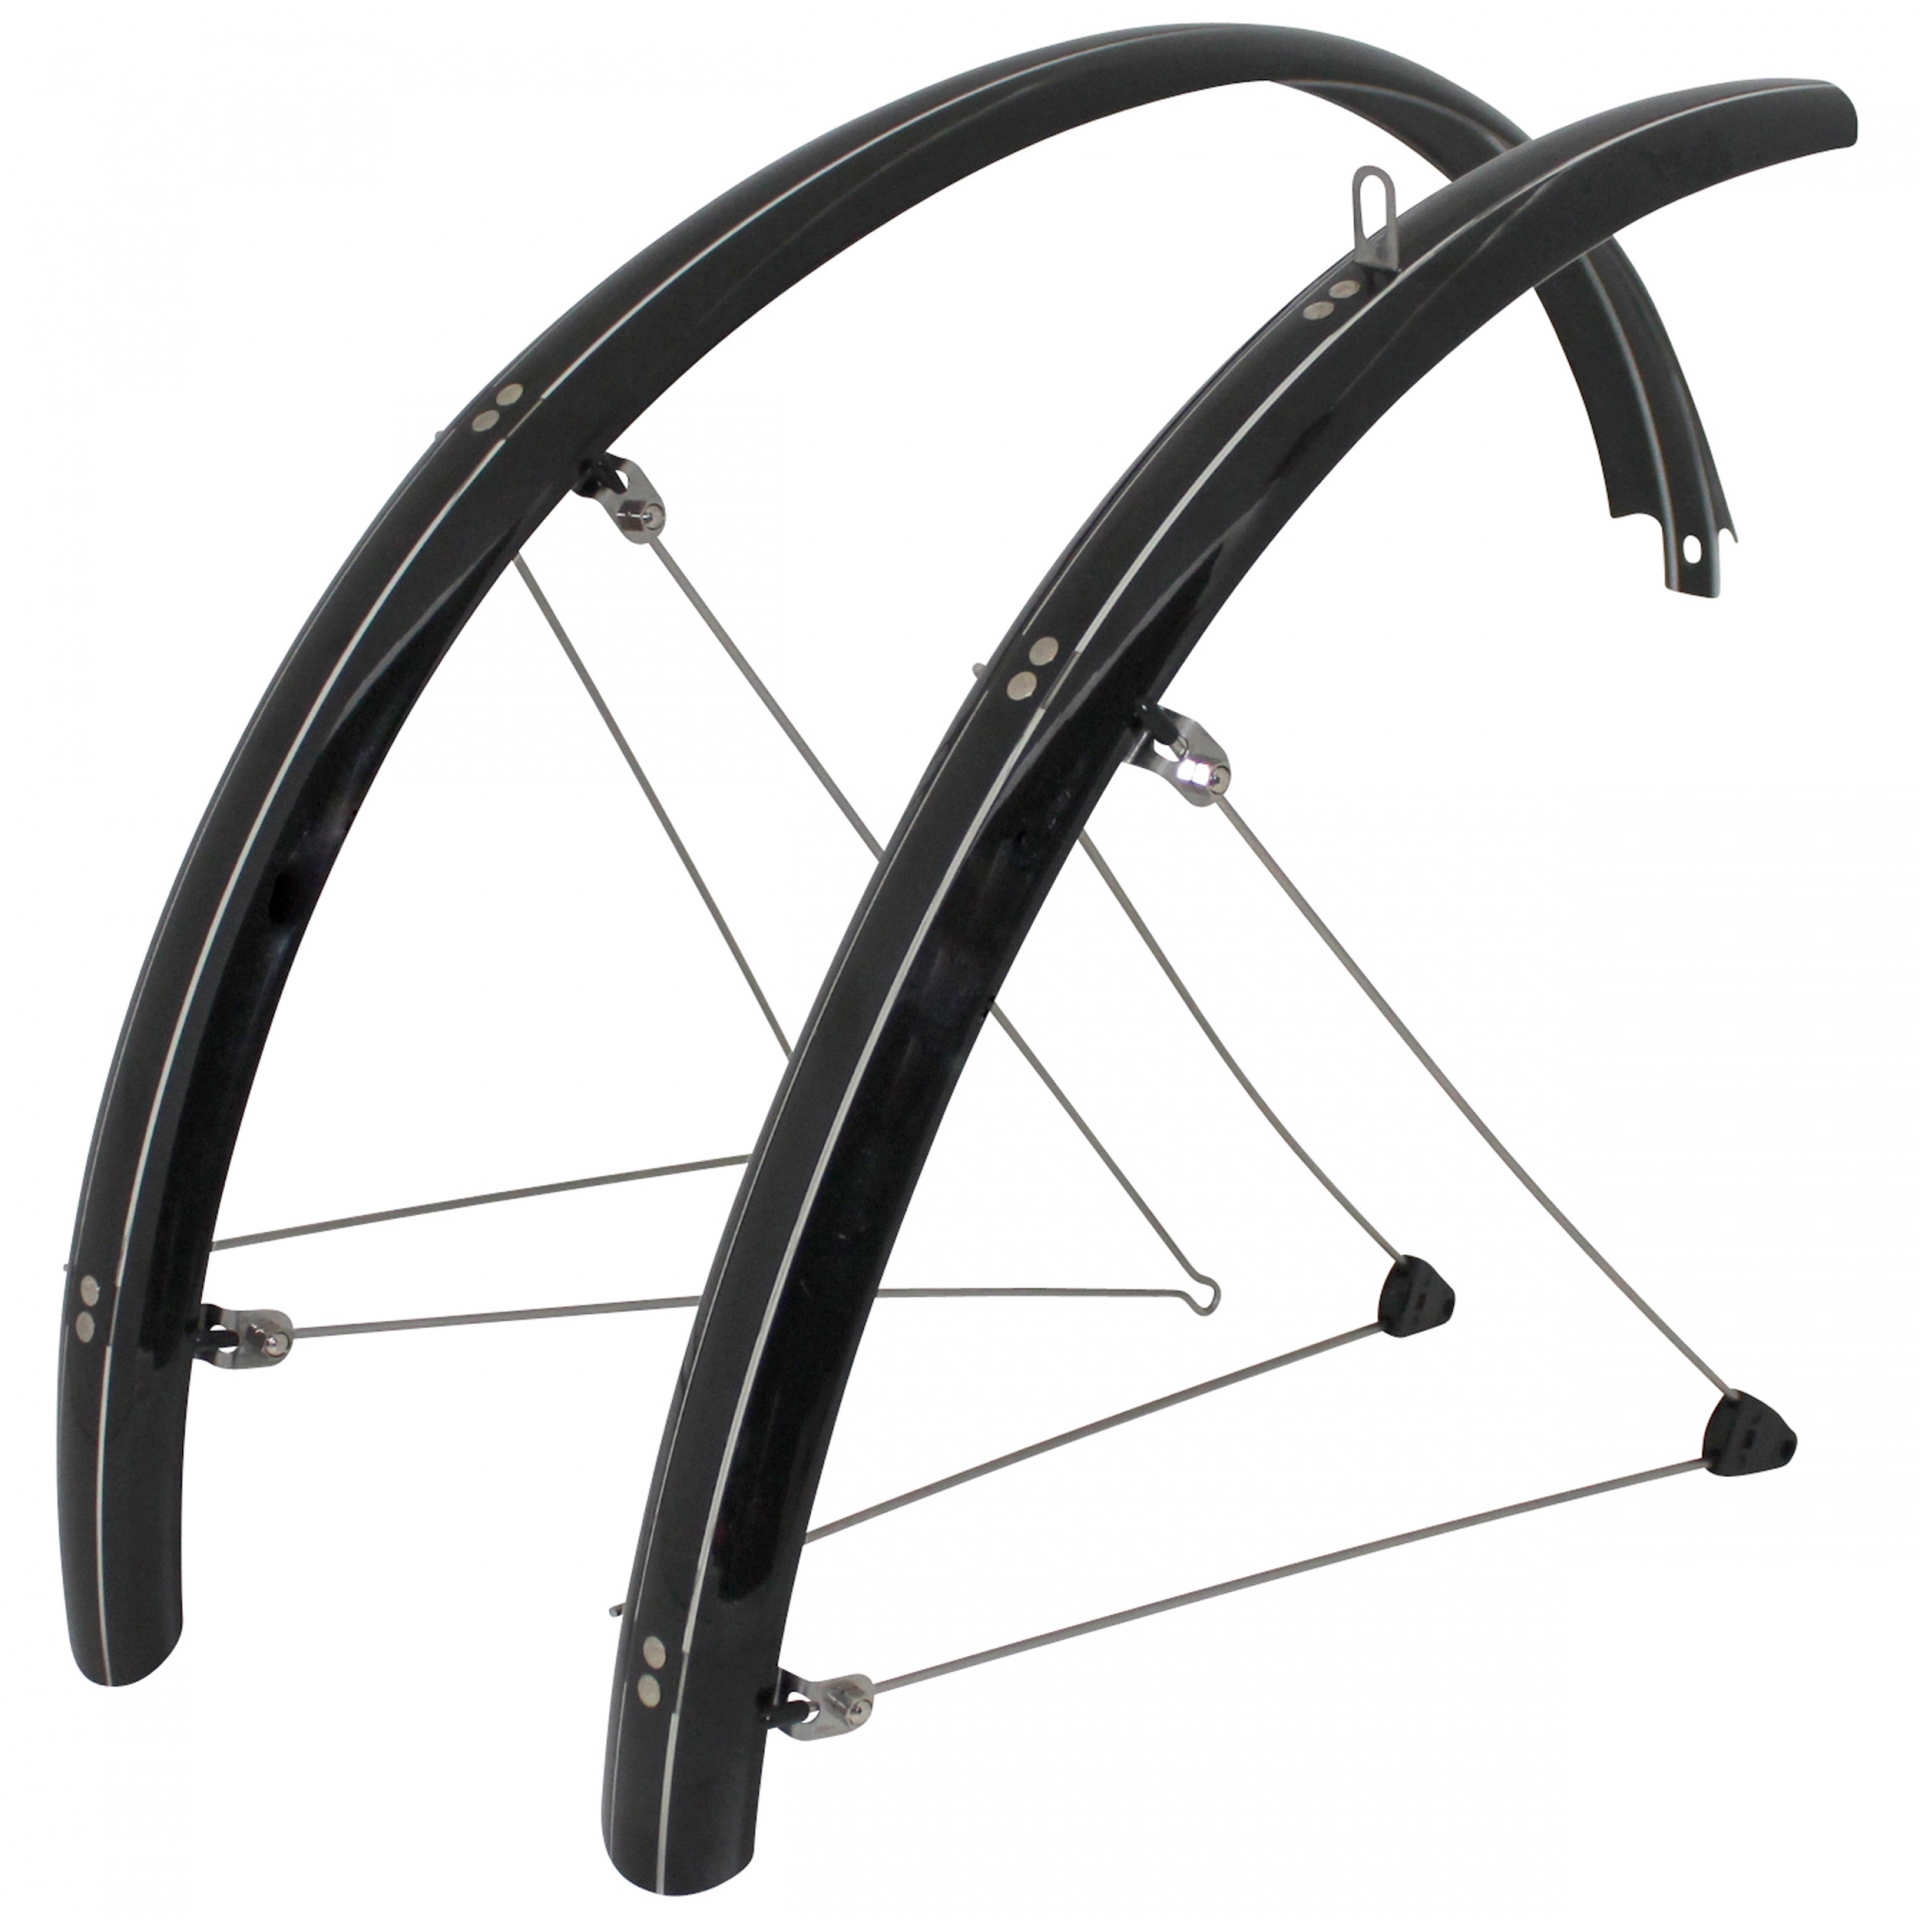 Garde-boue Stronglight Country VTT à tringles 26'' 54 mm Noir (paire)